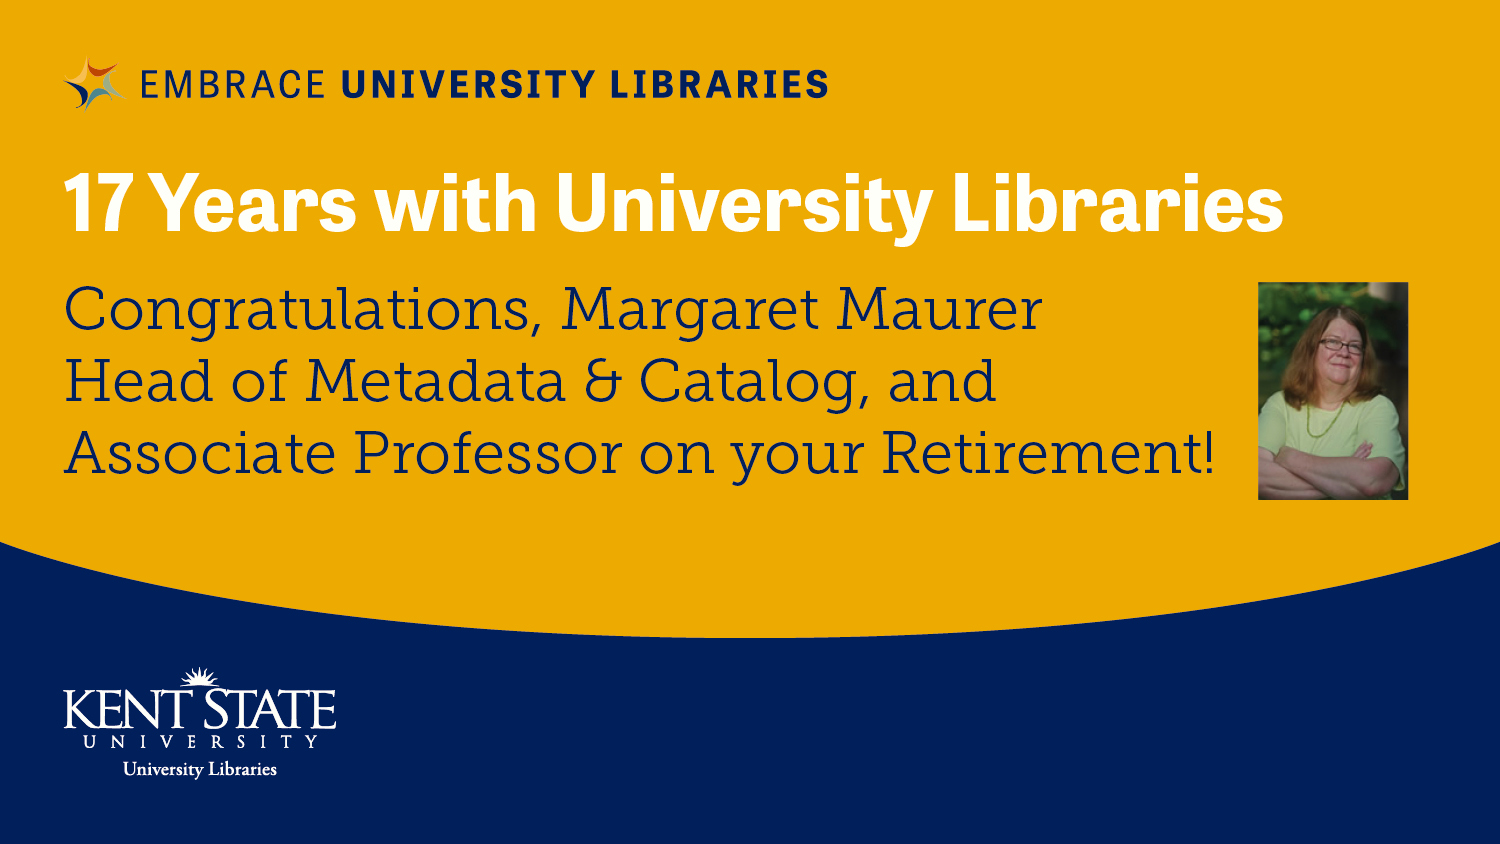 Show more about Congratulations, Margaret Maurer Head of Metadata & Catalog, and Associate Professor on your Retirement!